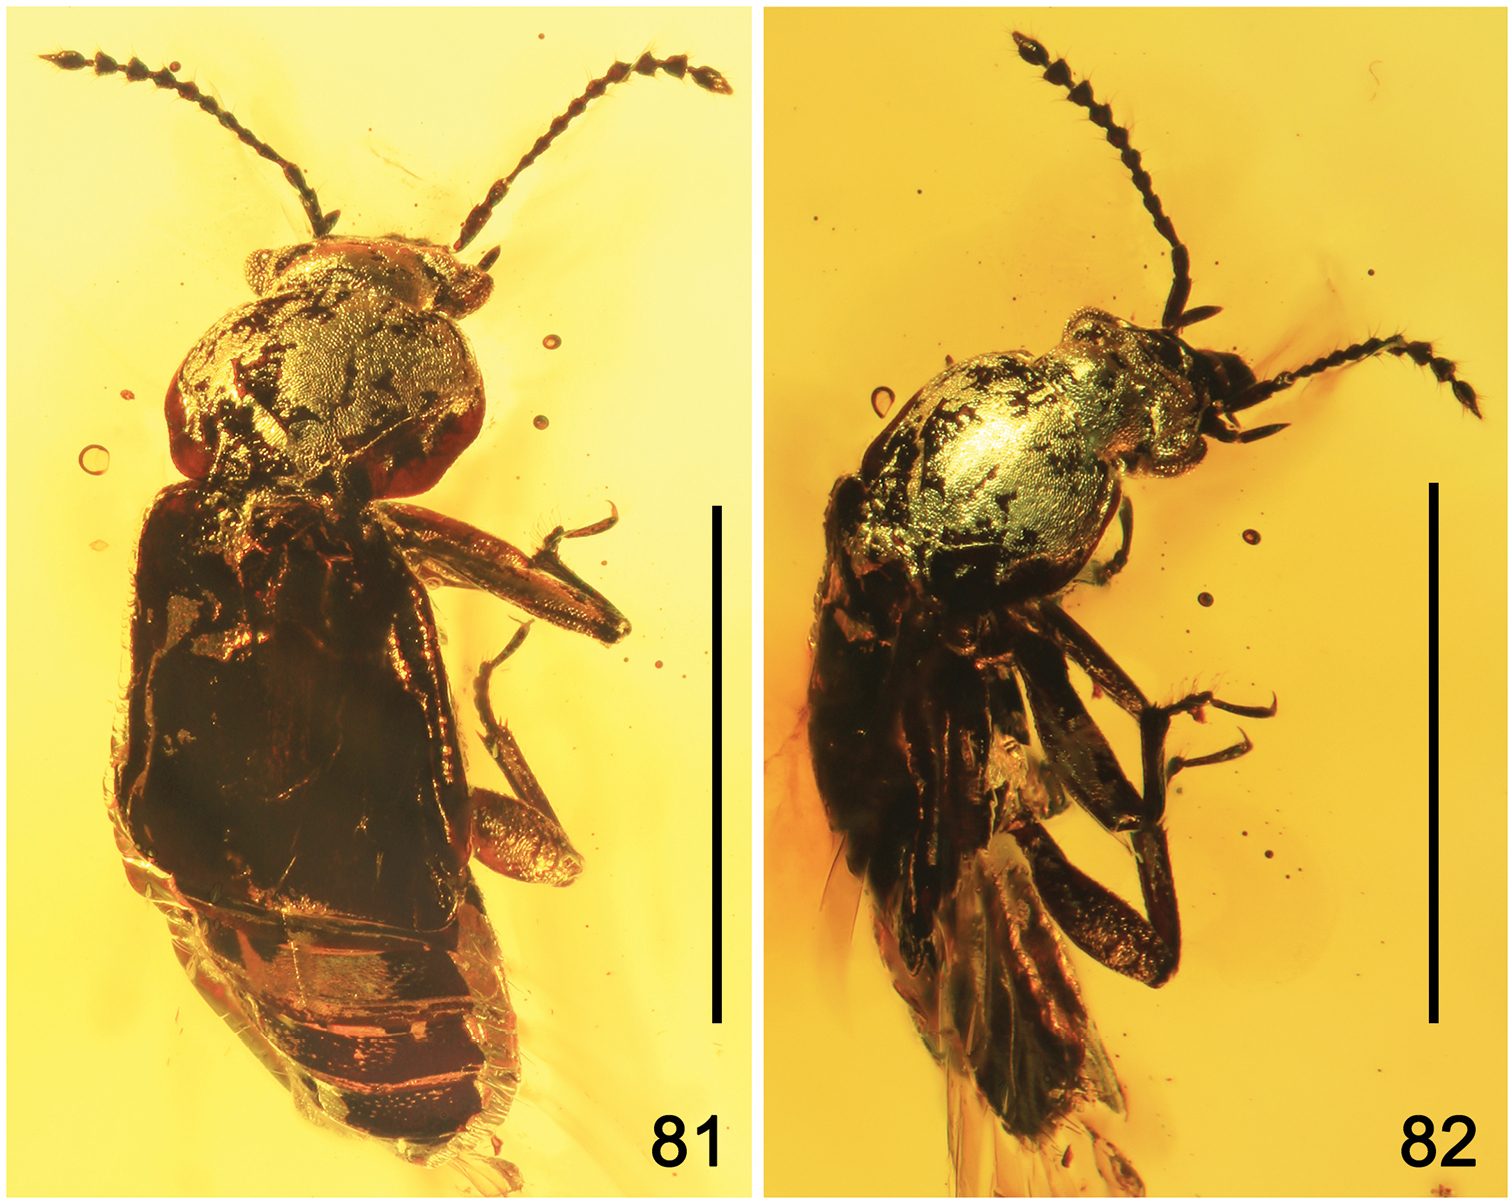 by dating fossils of pollen and beetles